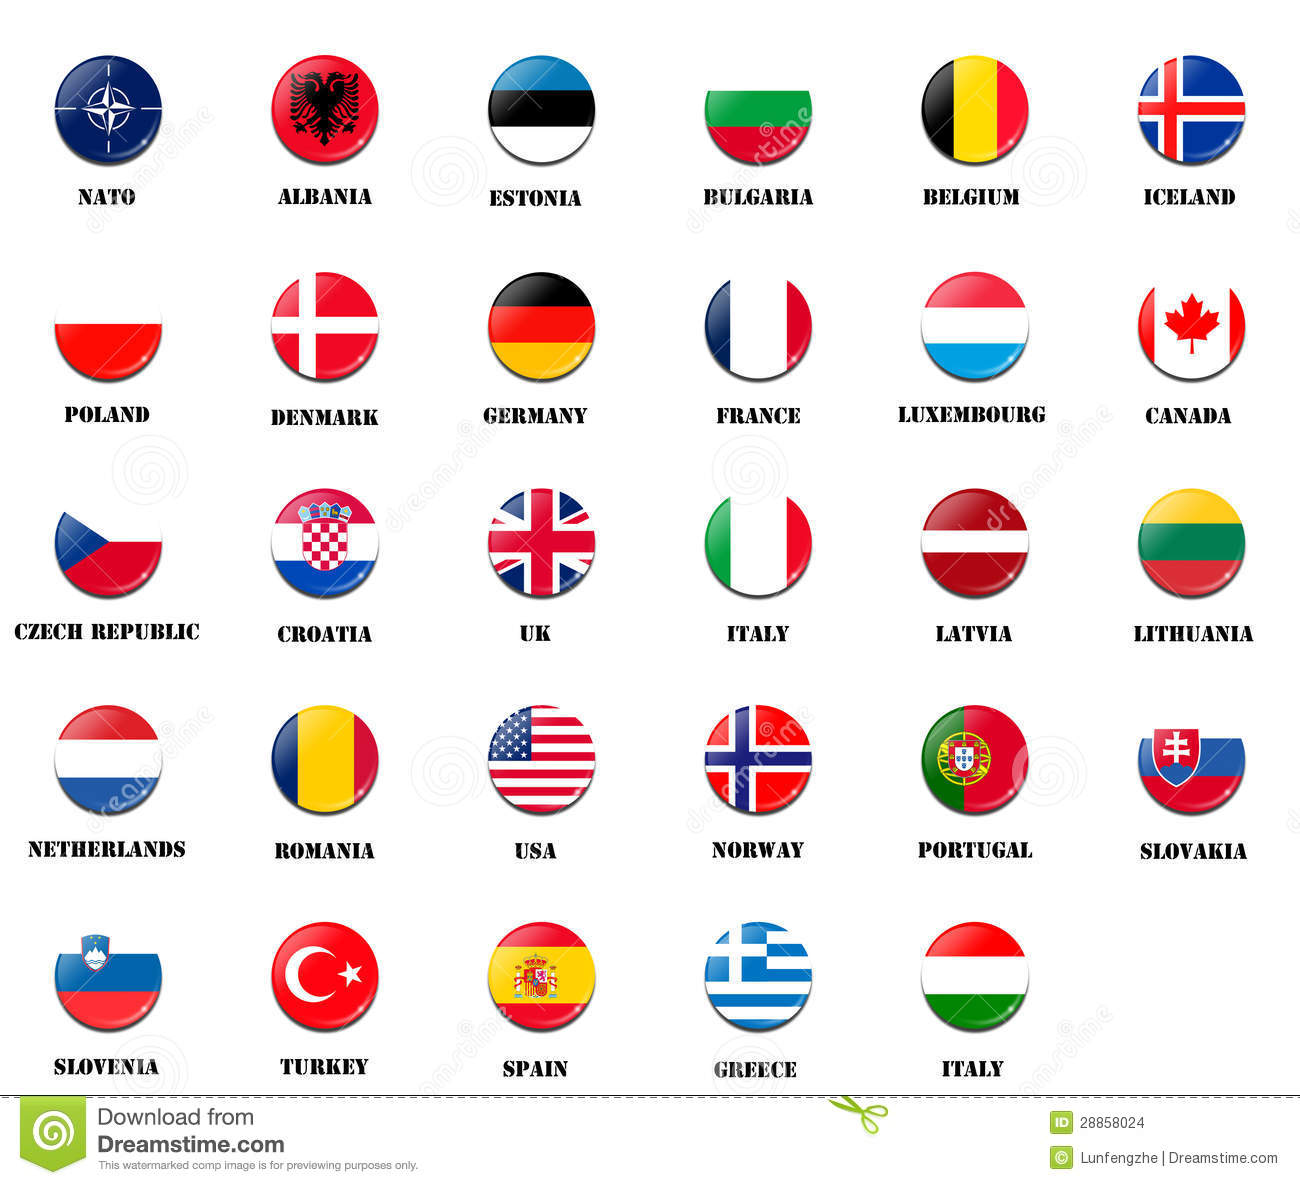 Image result for Picture of NATO Flags